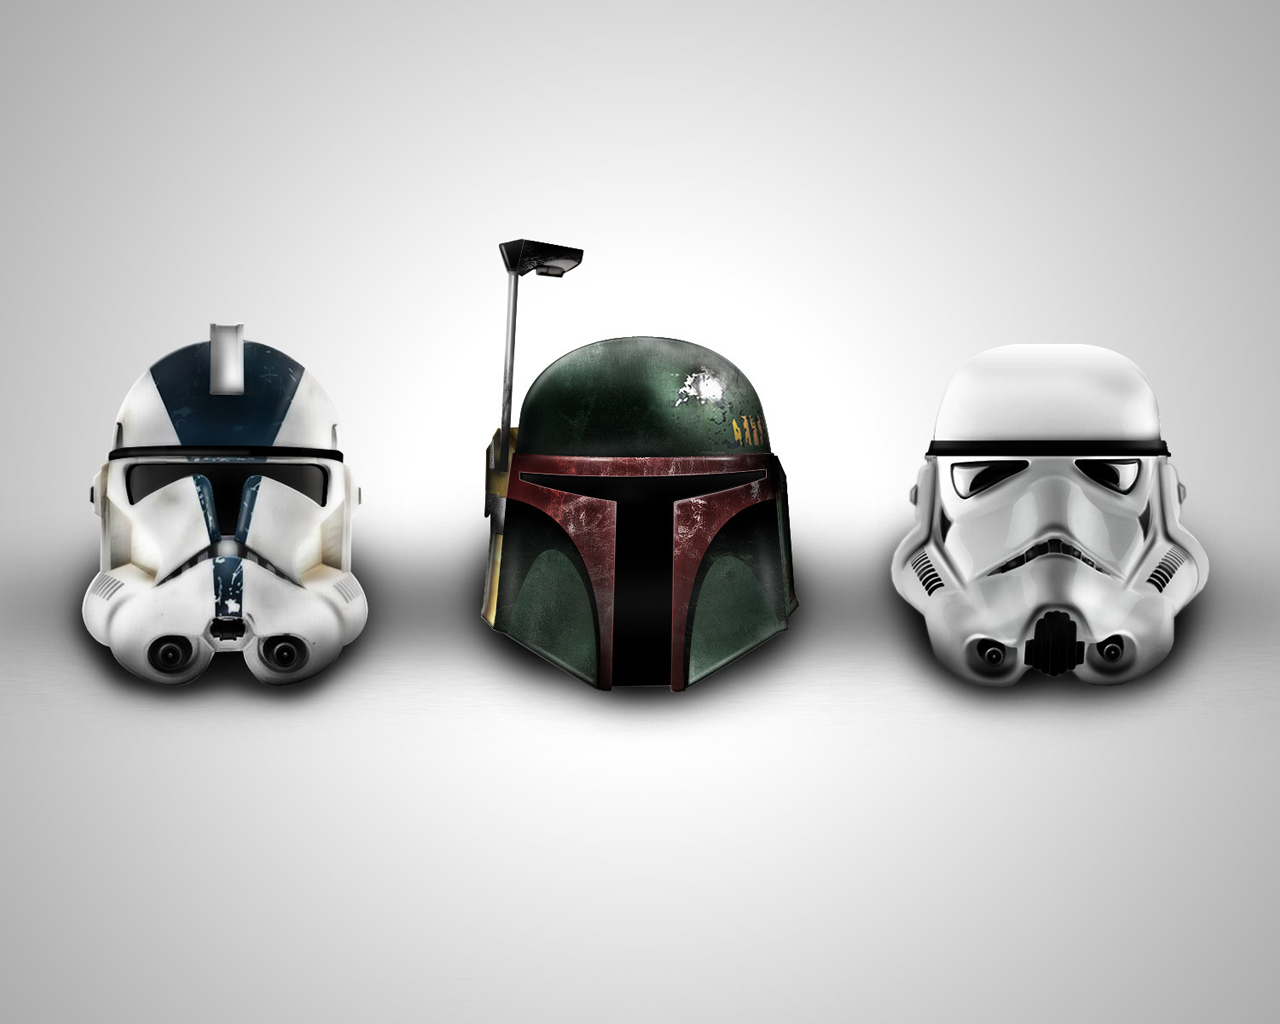 Star wars soldier heads